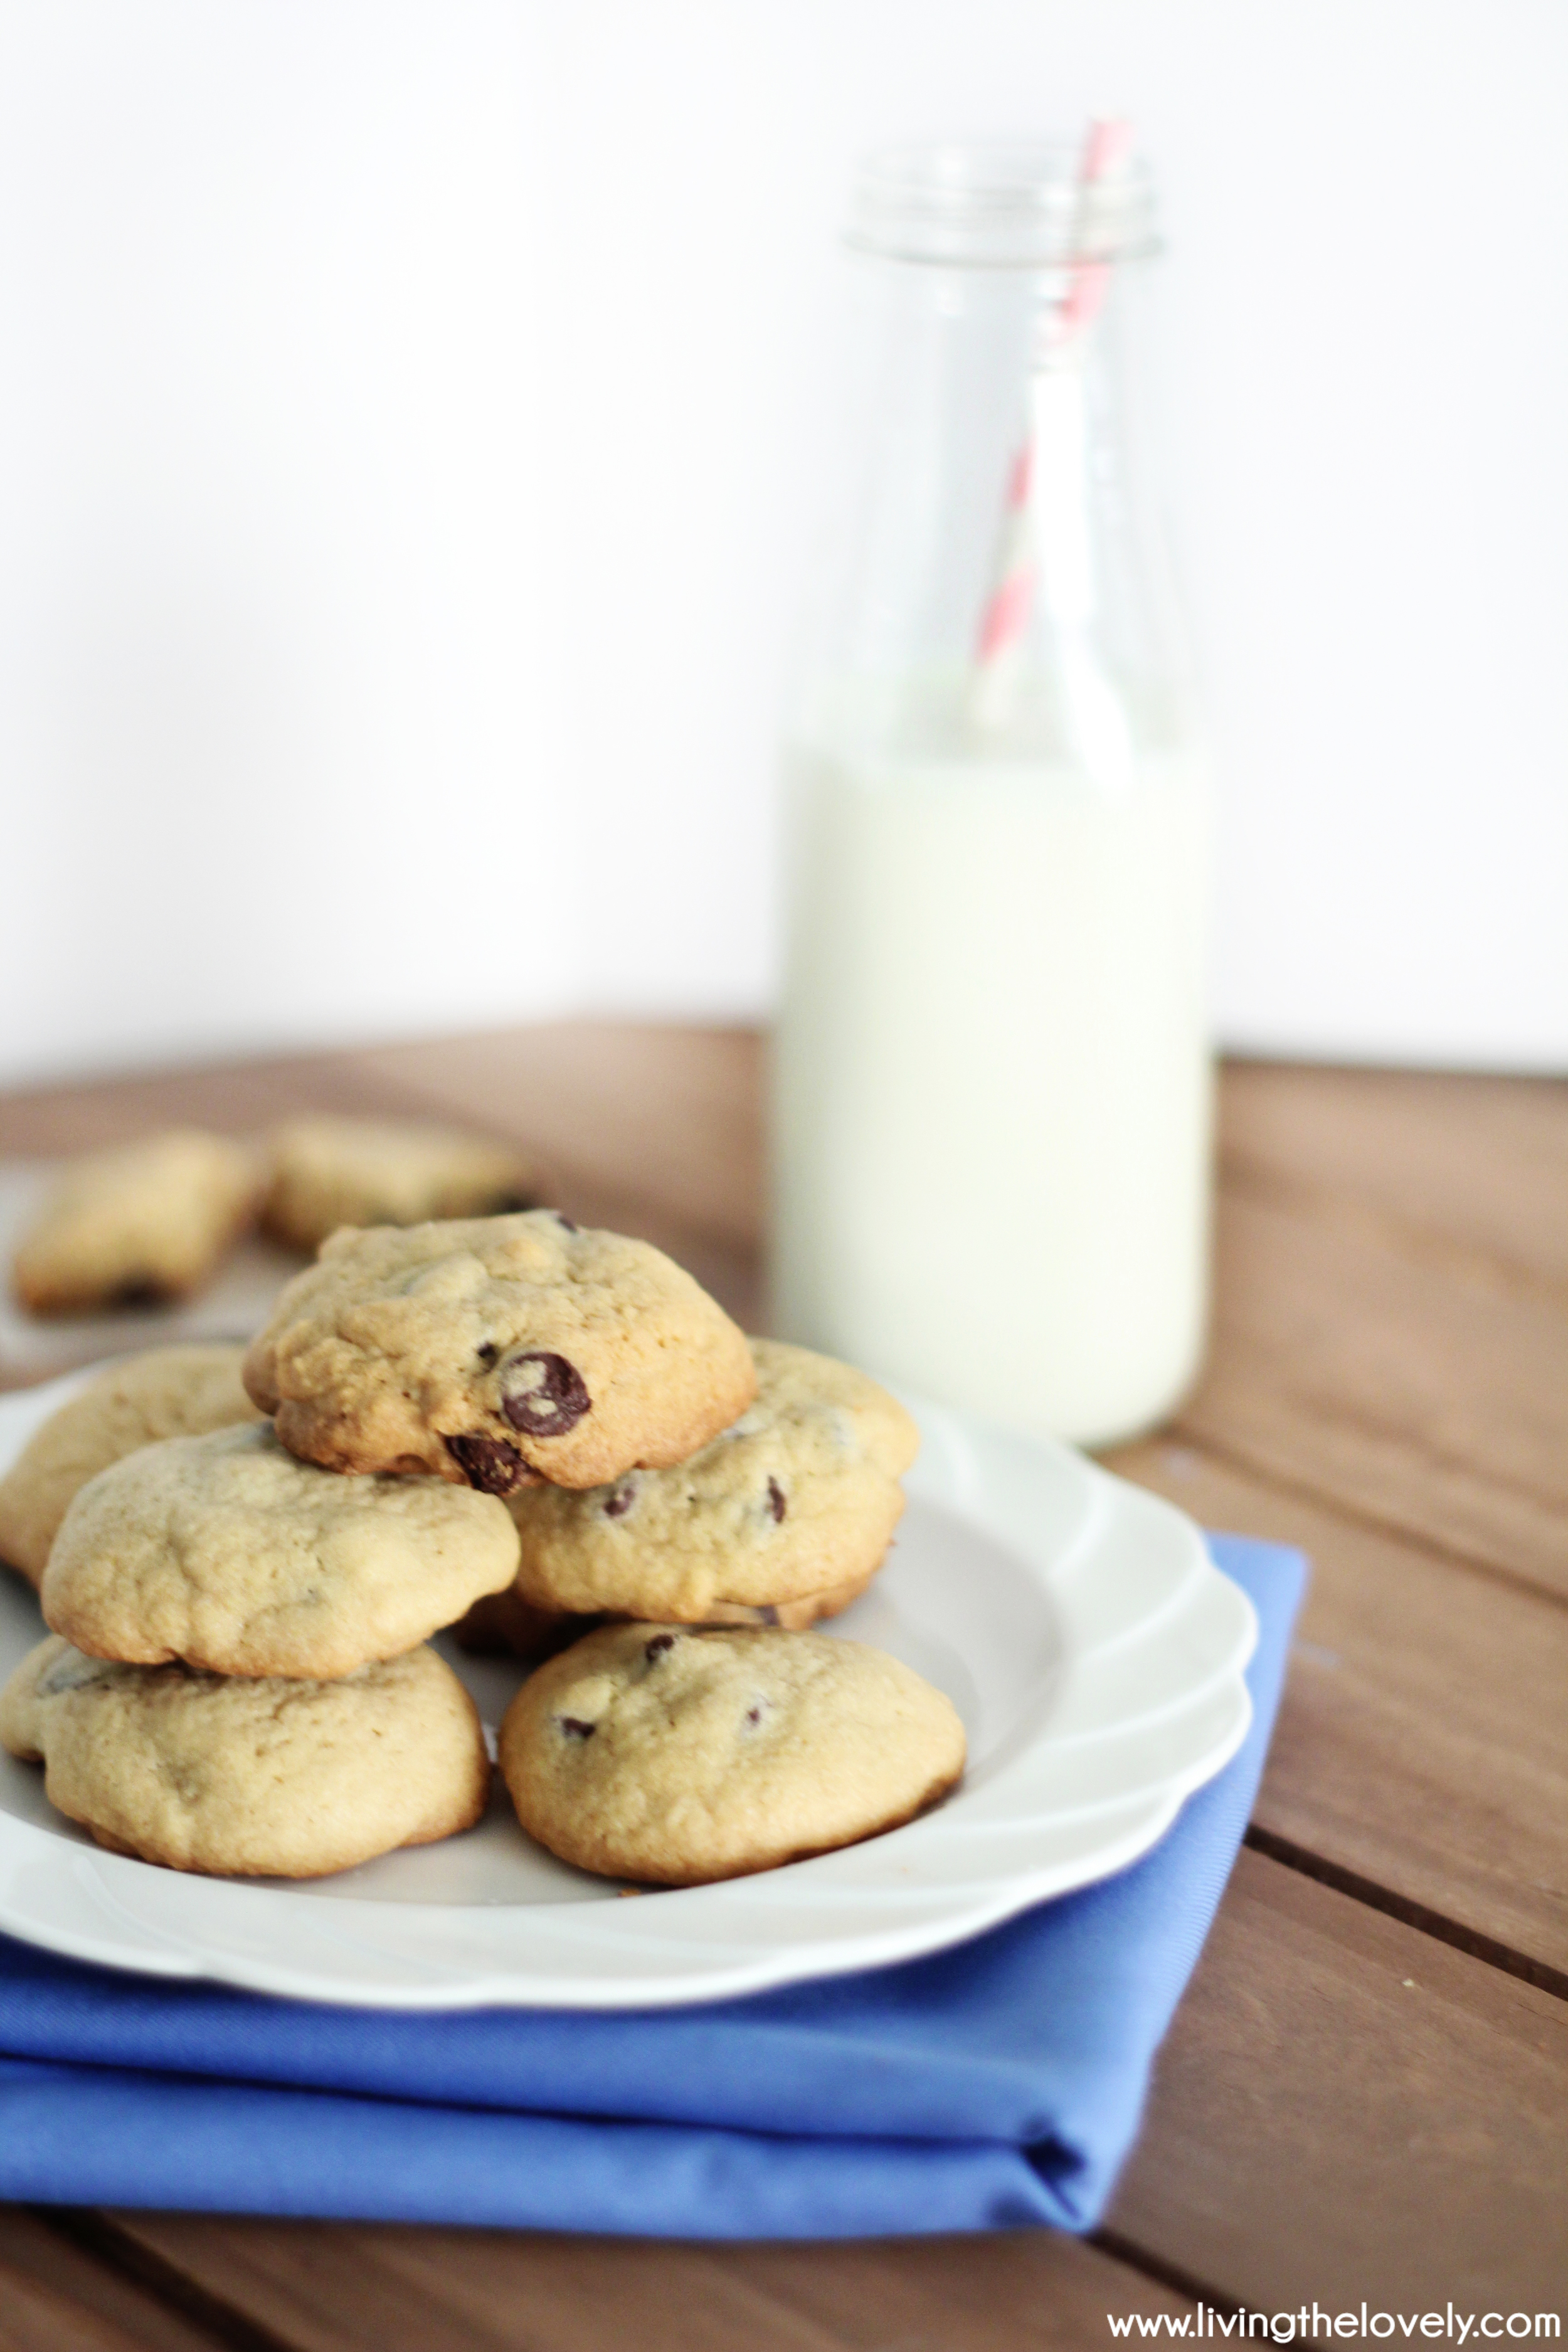 The Fast and Easy Recipe for the first ever Chocolate Chip cooke recipe ever! This is the original recipe accidentally created by Mrs. Wakefield in the 1930's.....and its delicious! A perfect classic chocolate chip cookie....because it is! | www.livingthelovely.com